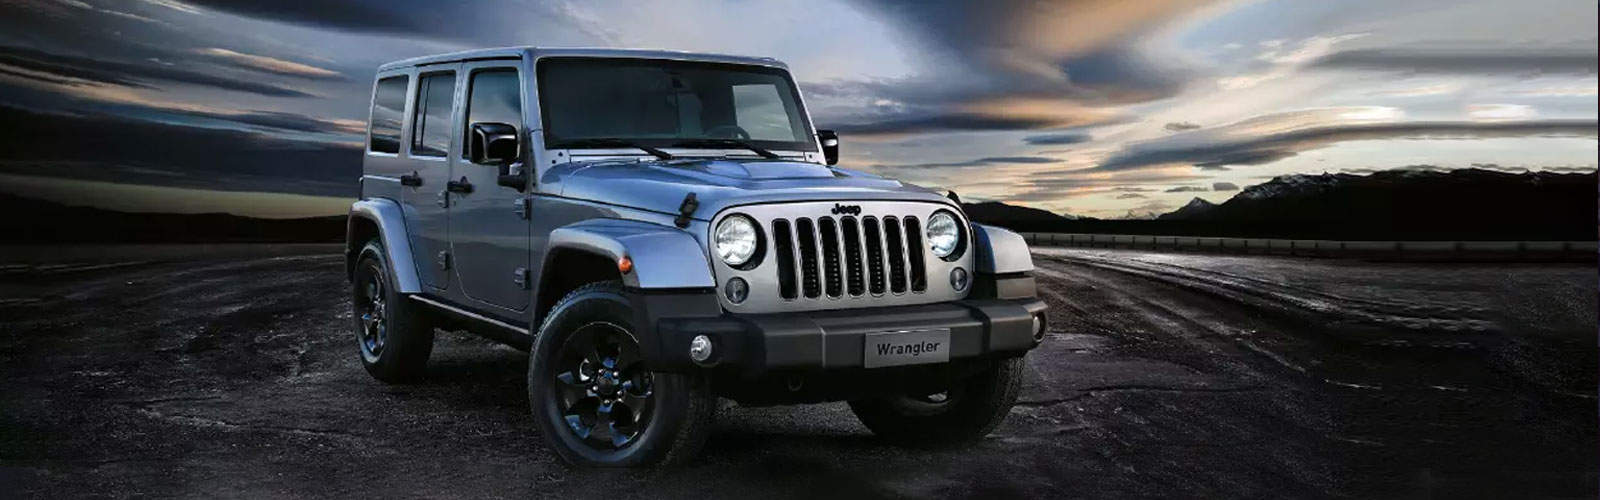 Jeep Wrangler Unlimited On Road Price in Bangalore - PPS Jeep